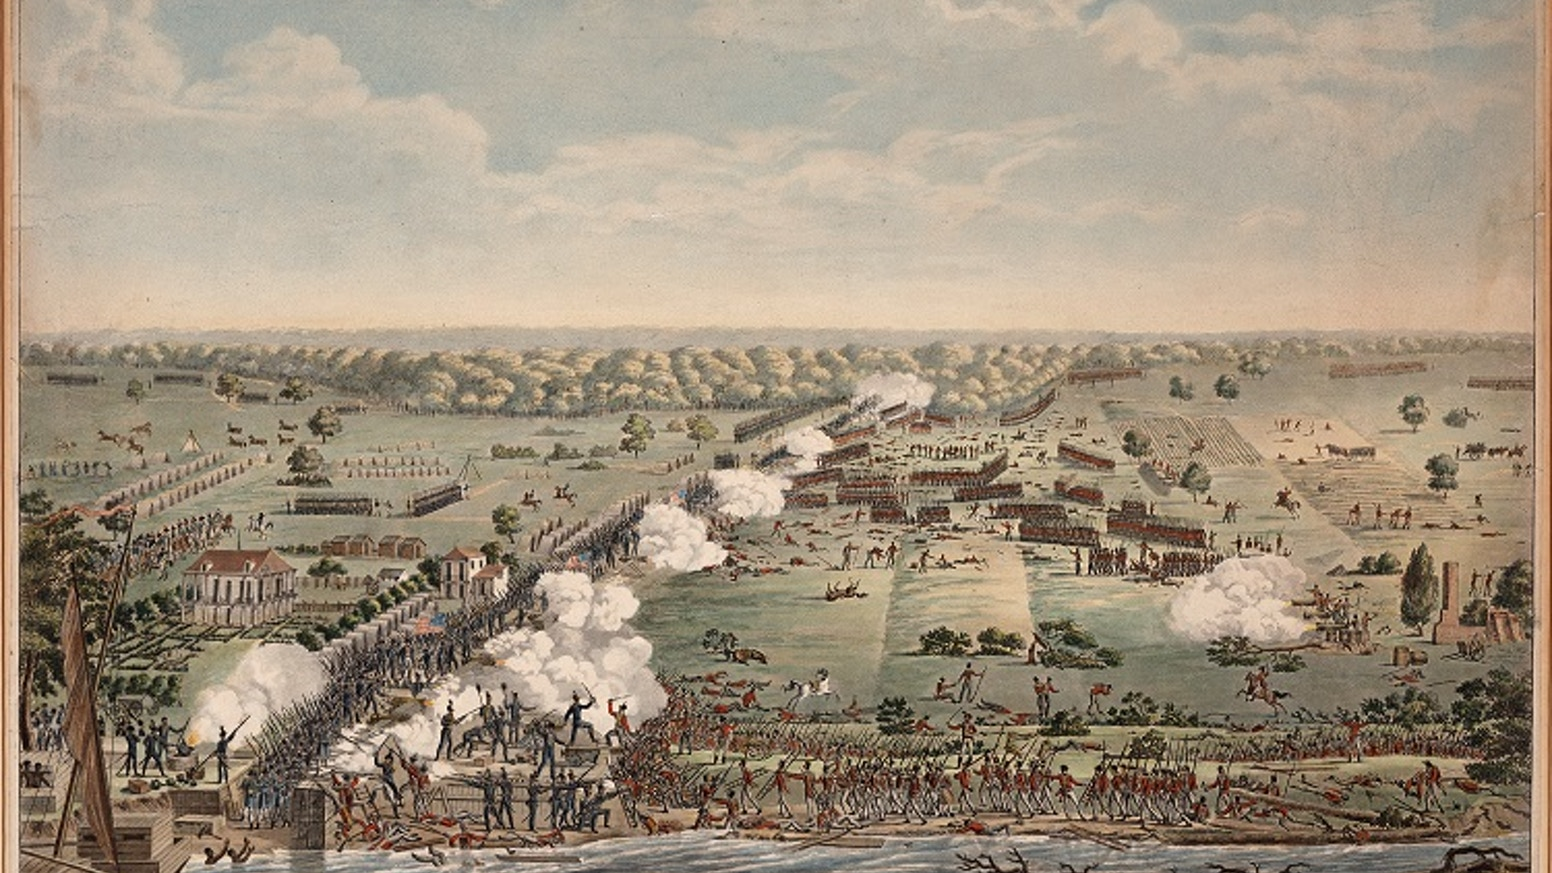 The Battle of New Orleans: But For a Piece of Wood